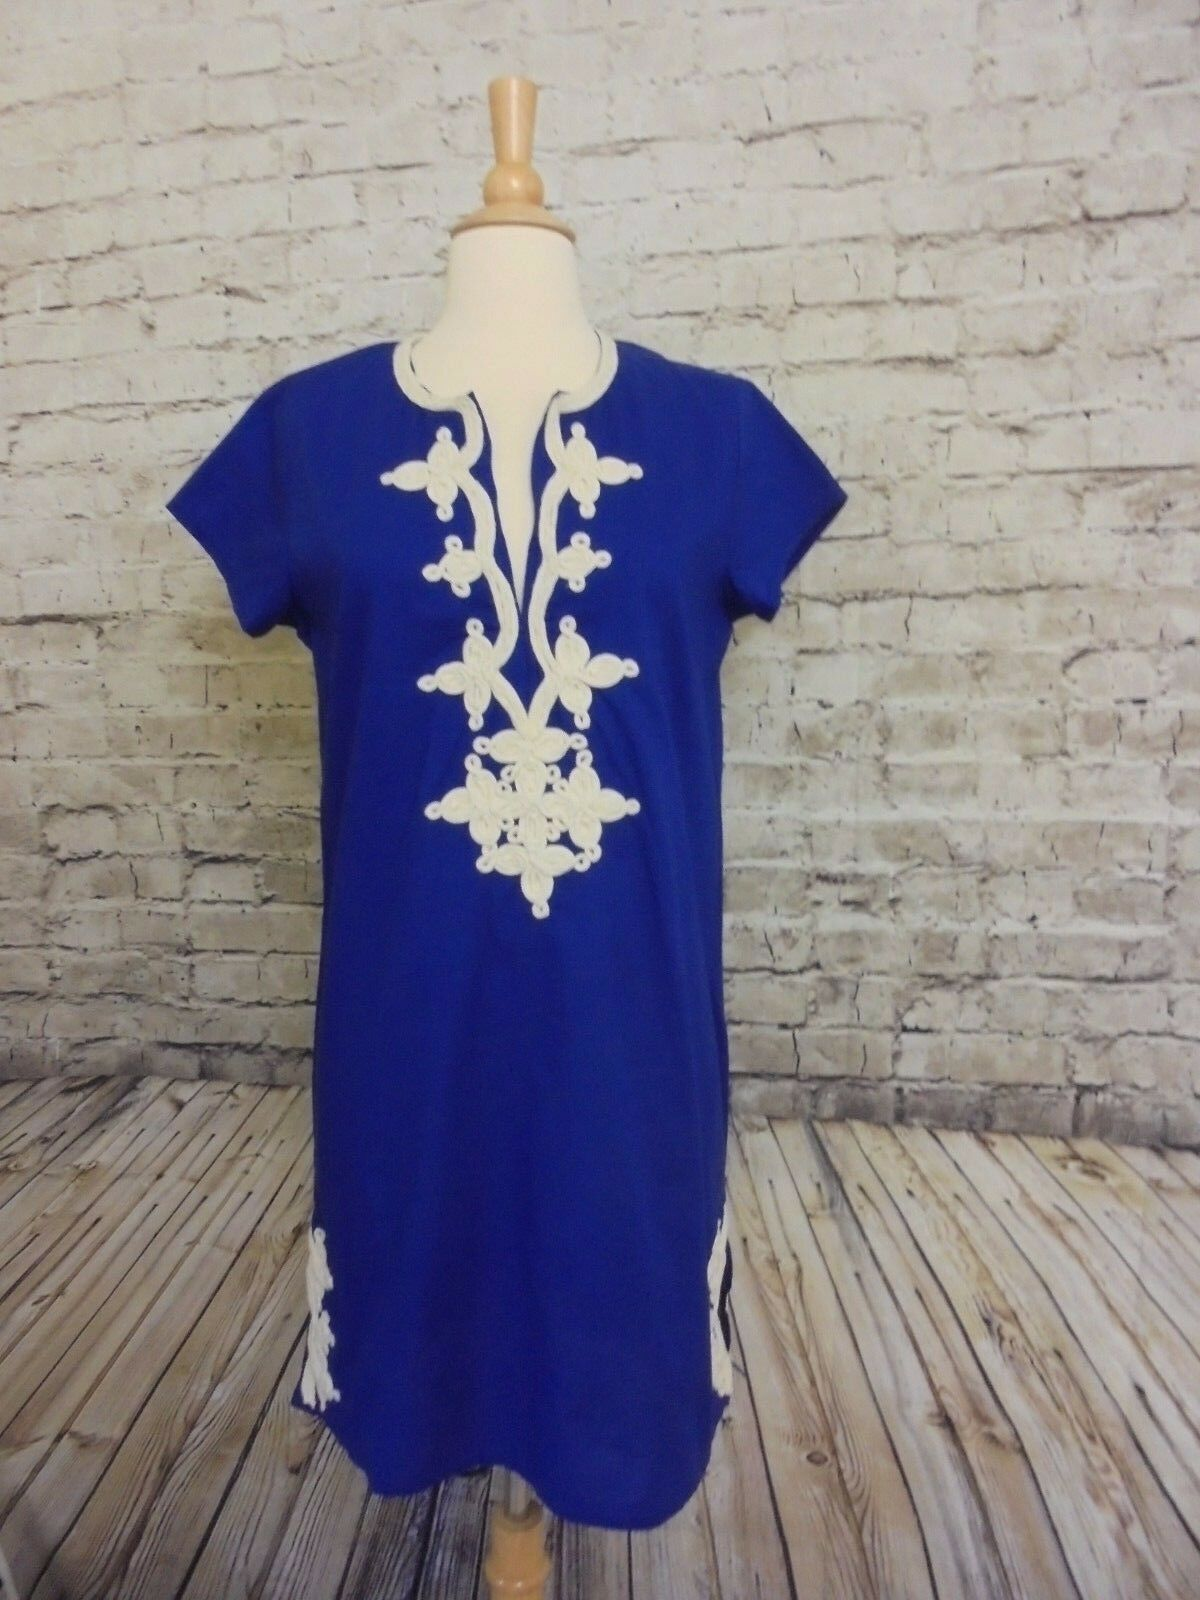 195 J CREW GALLABIA NEW YORK MINI DRESS COVER-UP L   F2931 IN blueE EMBROIDERED